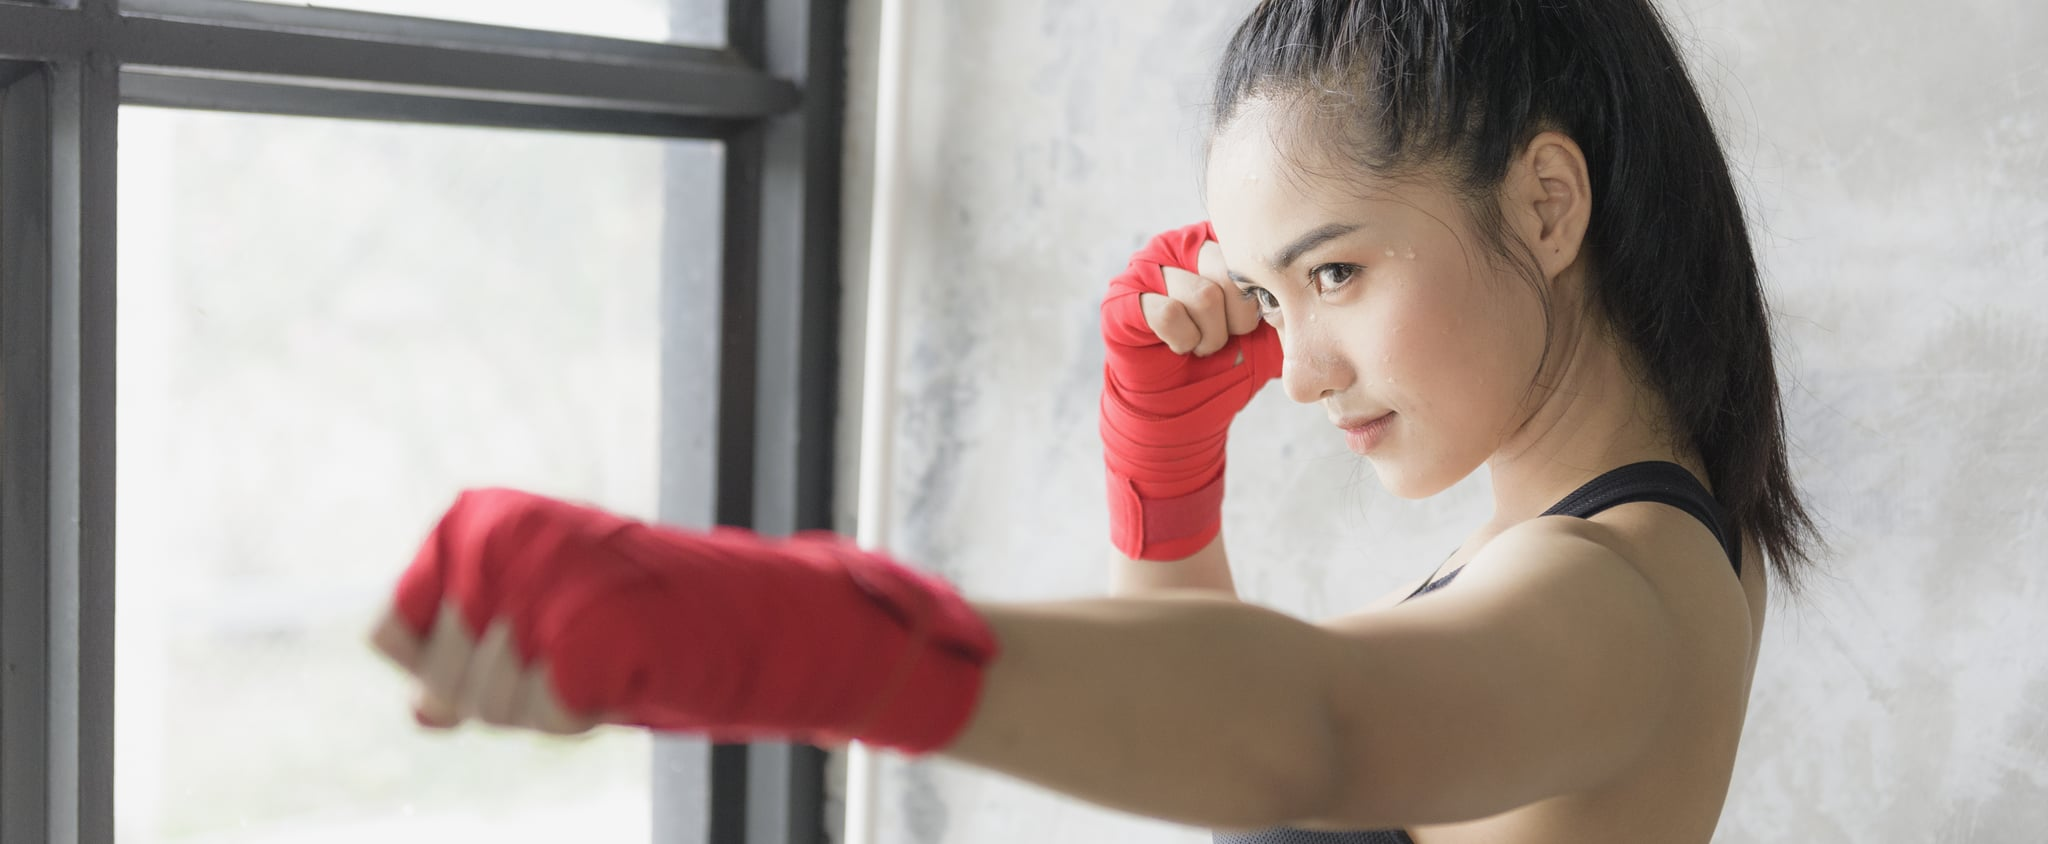 Ways You Can Improve Your Kickboxing Technique at Home